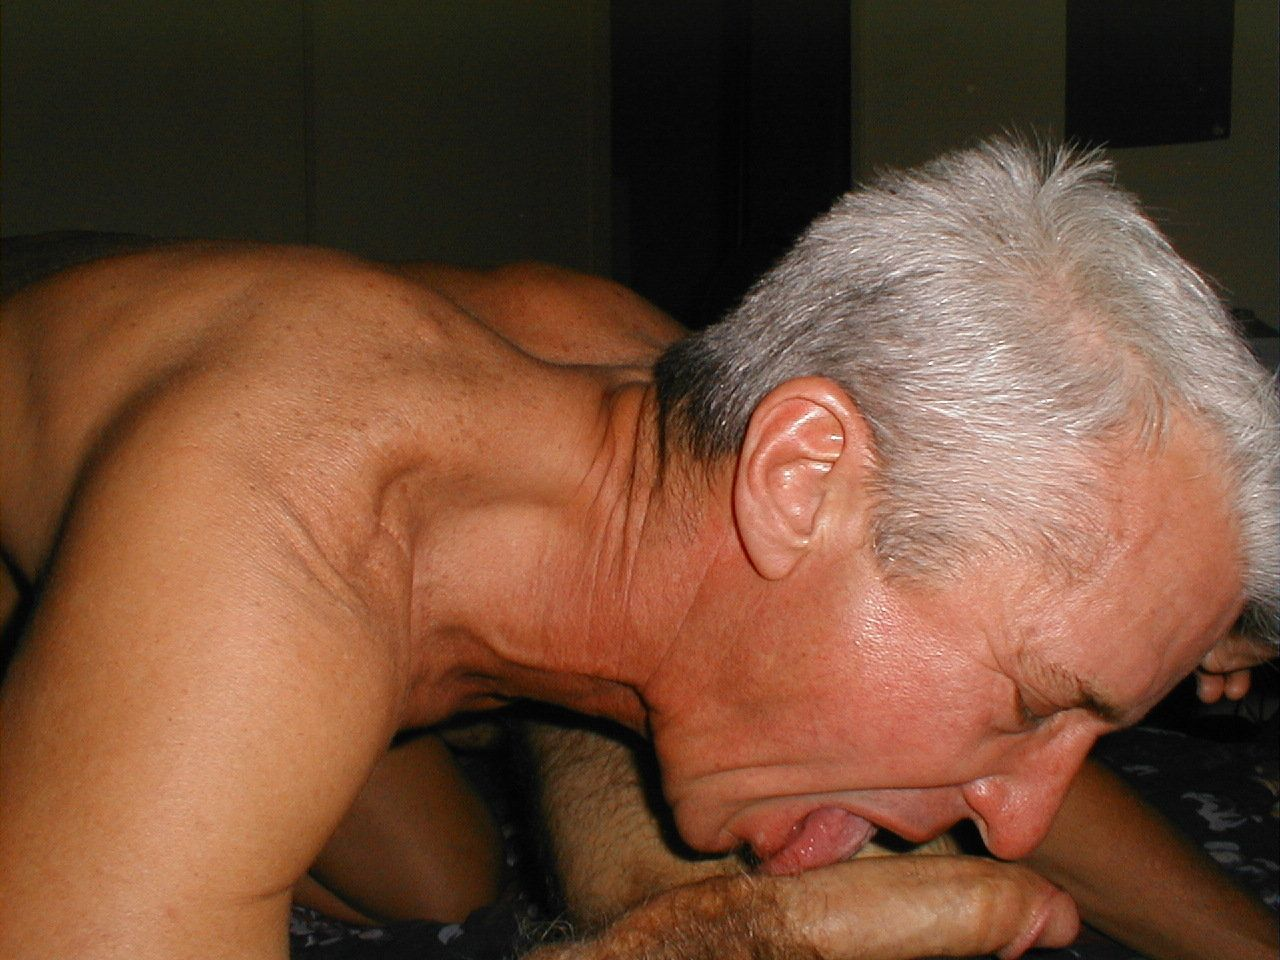 Dick licking gay bear goes down on